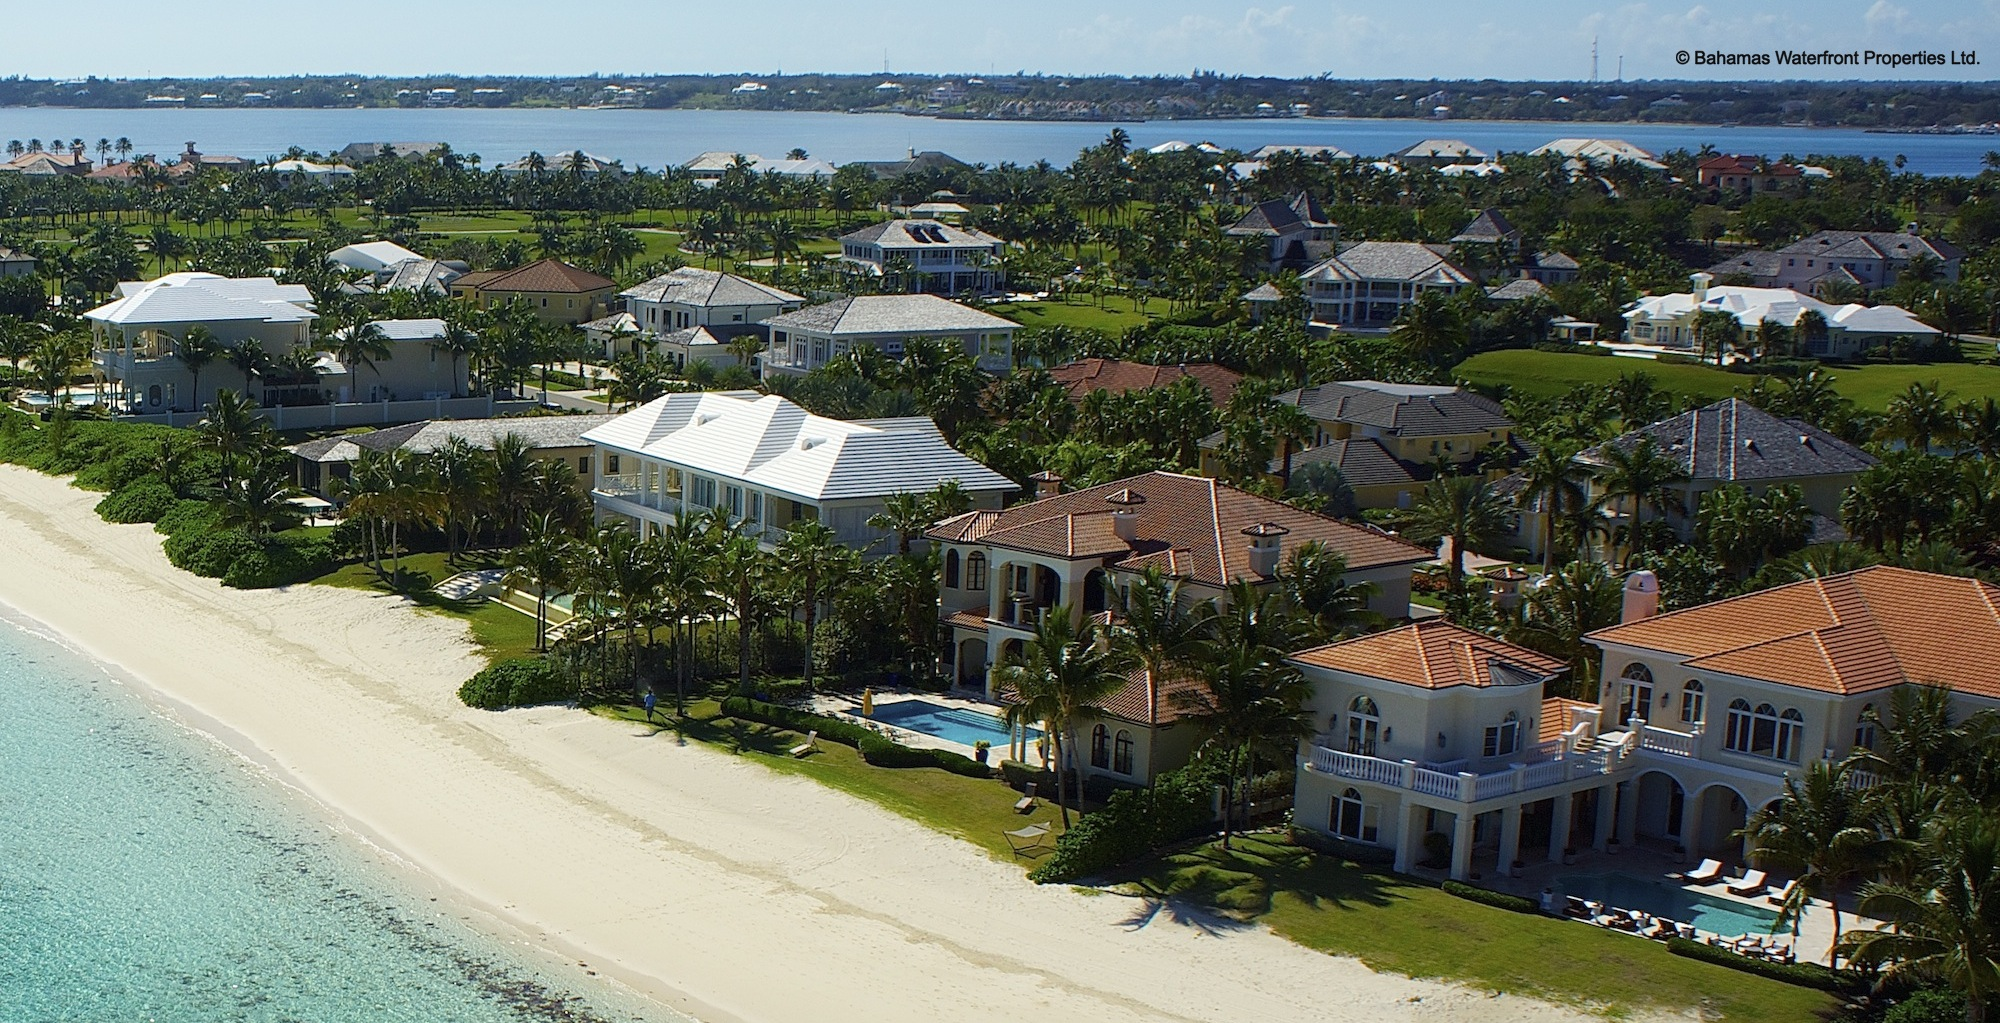 Bahamas Waterfront Properties